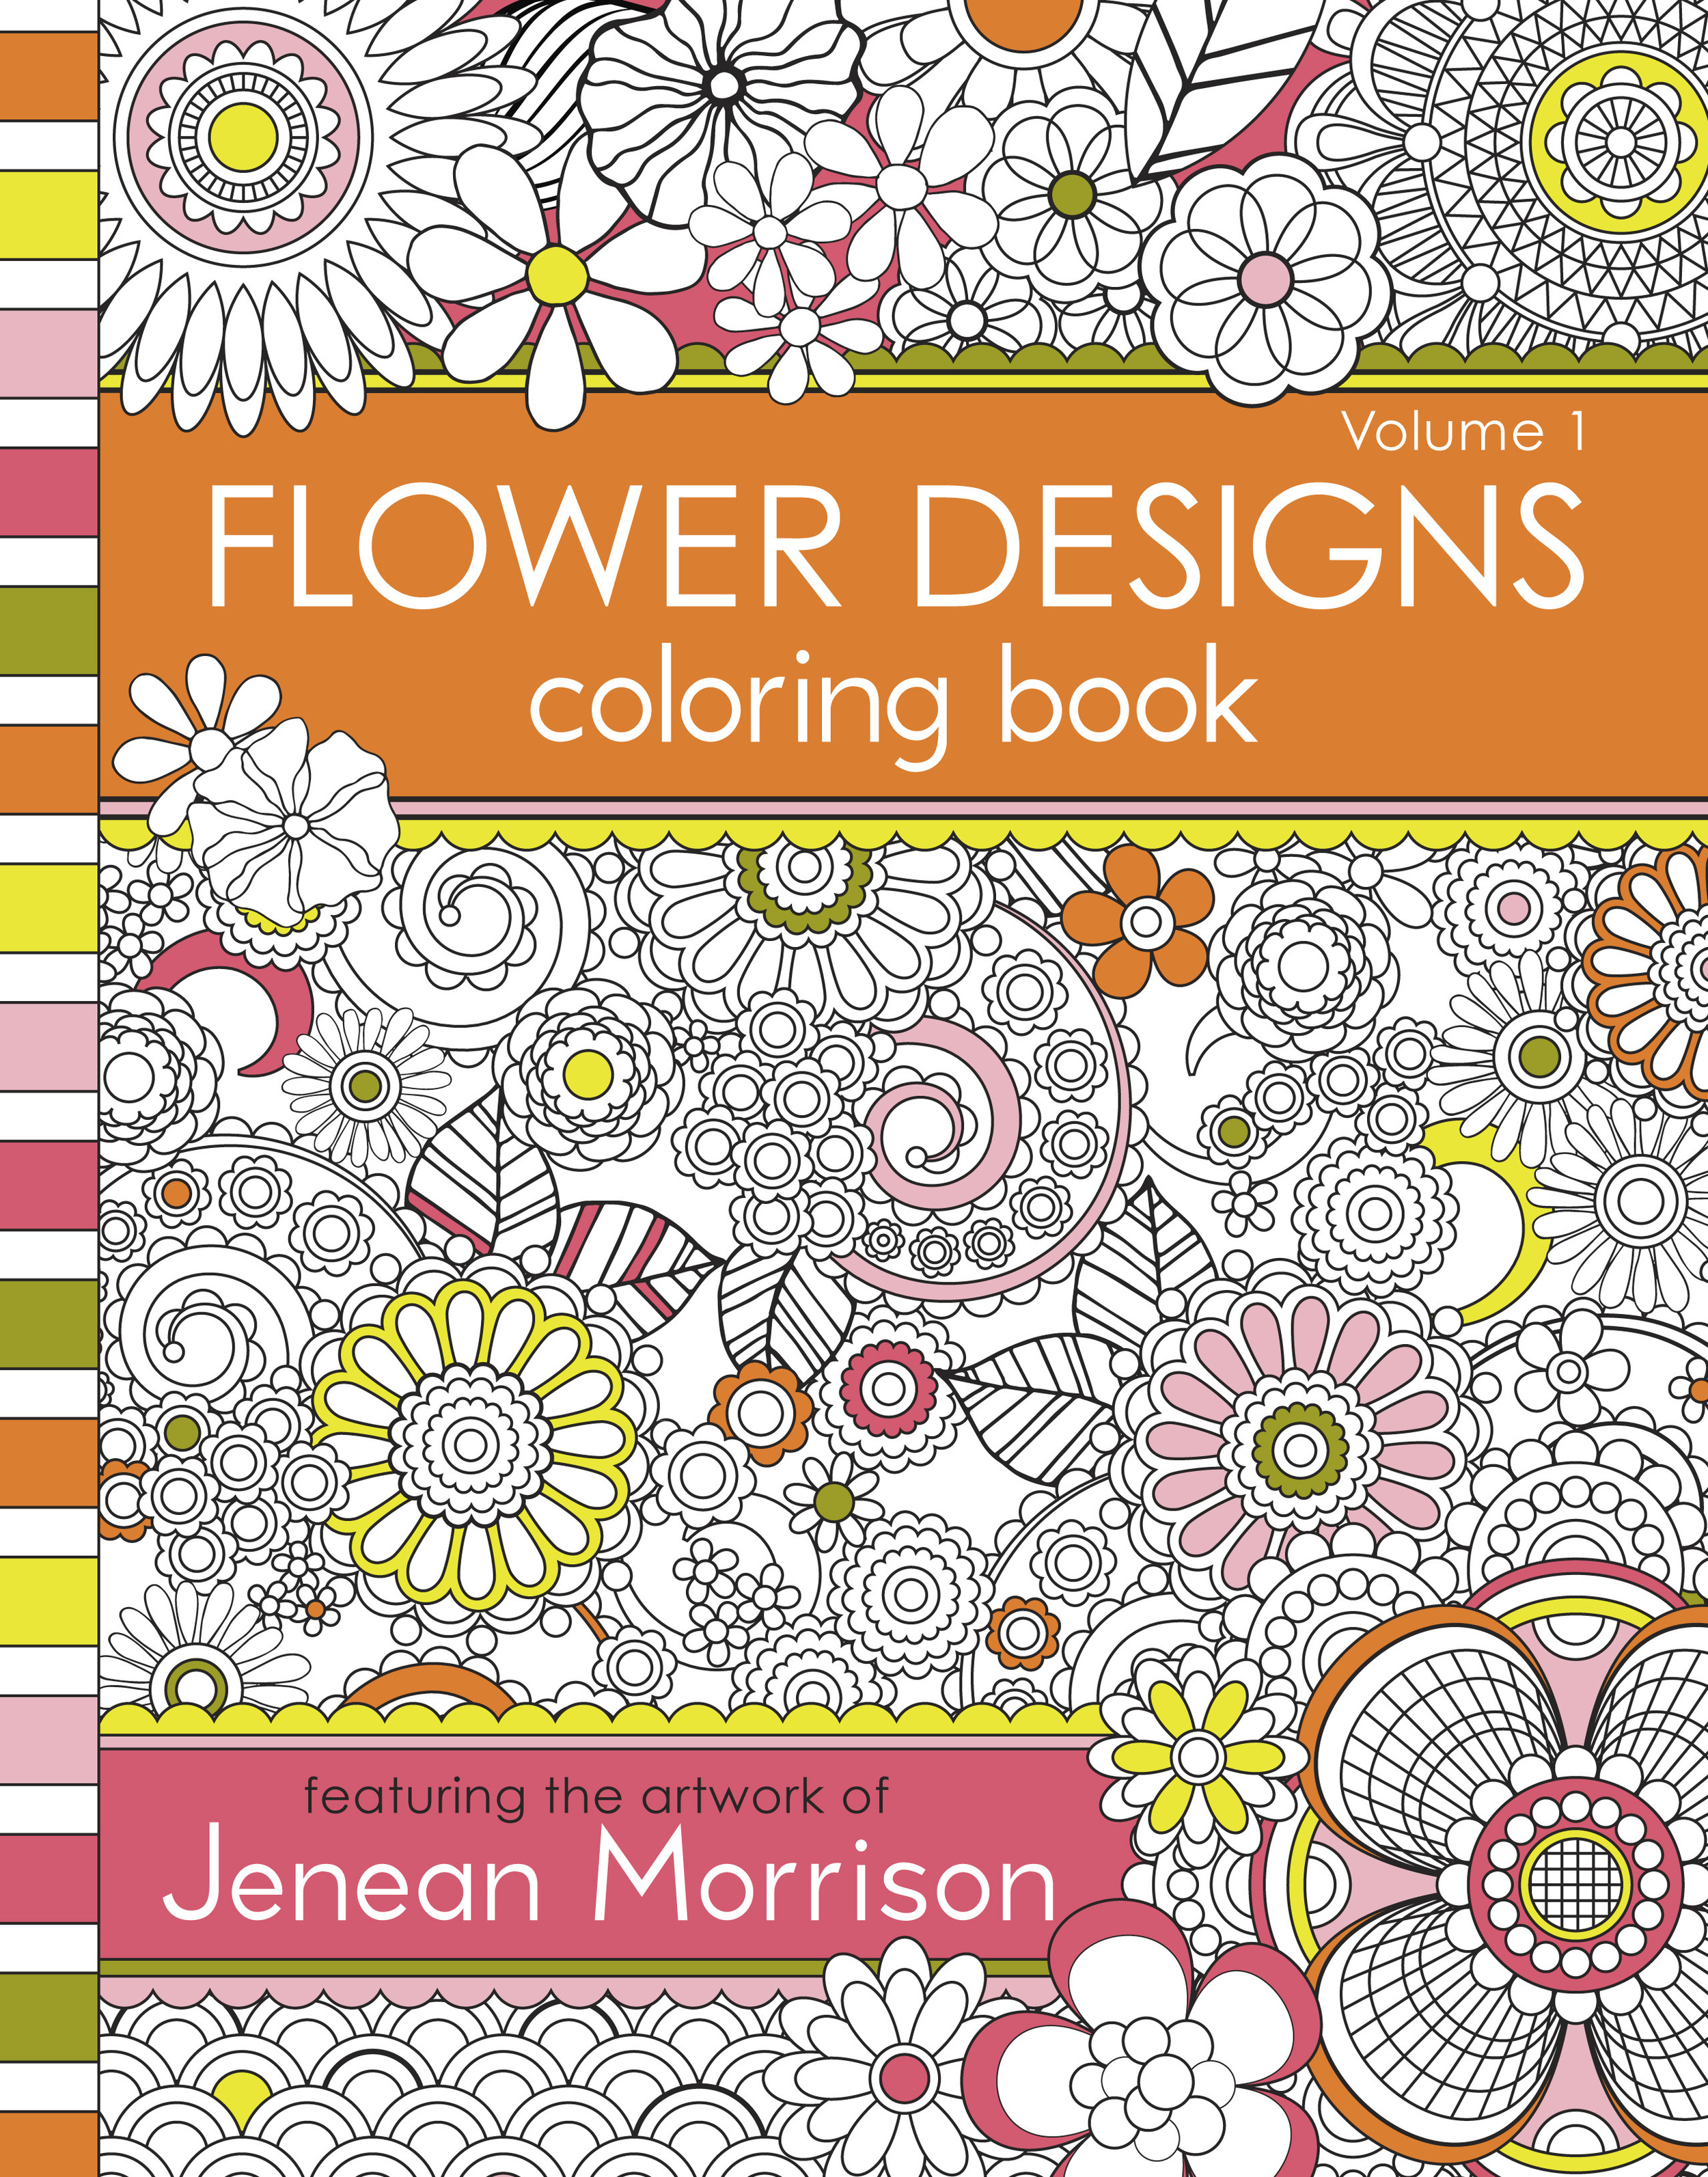 Flower Designs Coloring Book, Volume 1 by Jenean Morrison